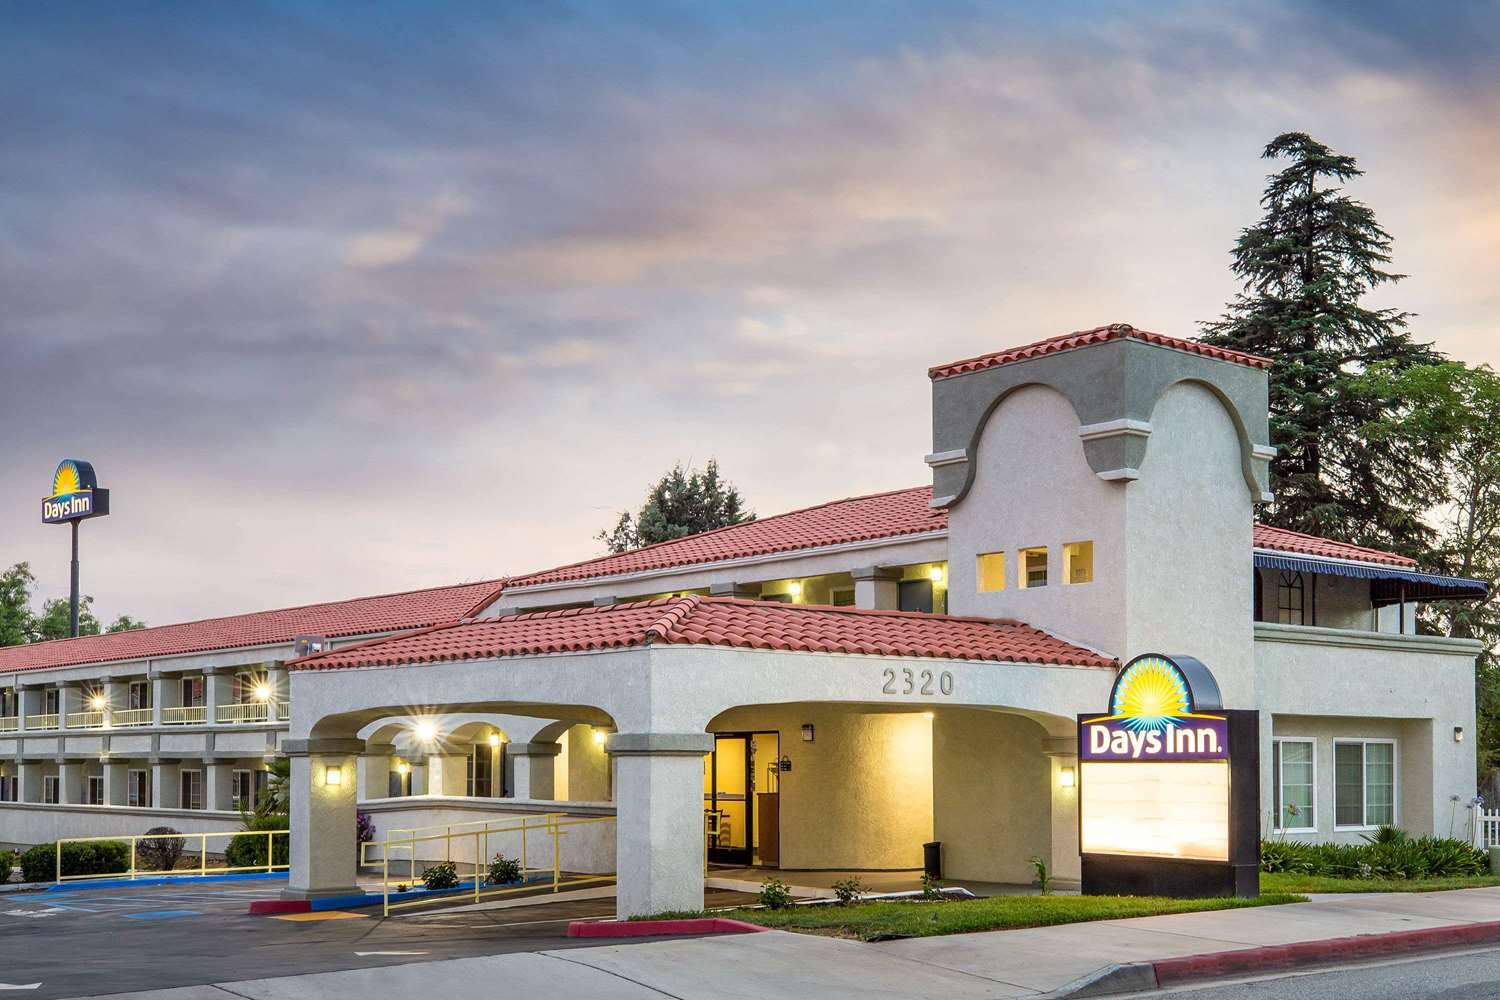 Days Inn by Wyndham, Banning Casino/Outlet Mall